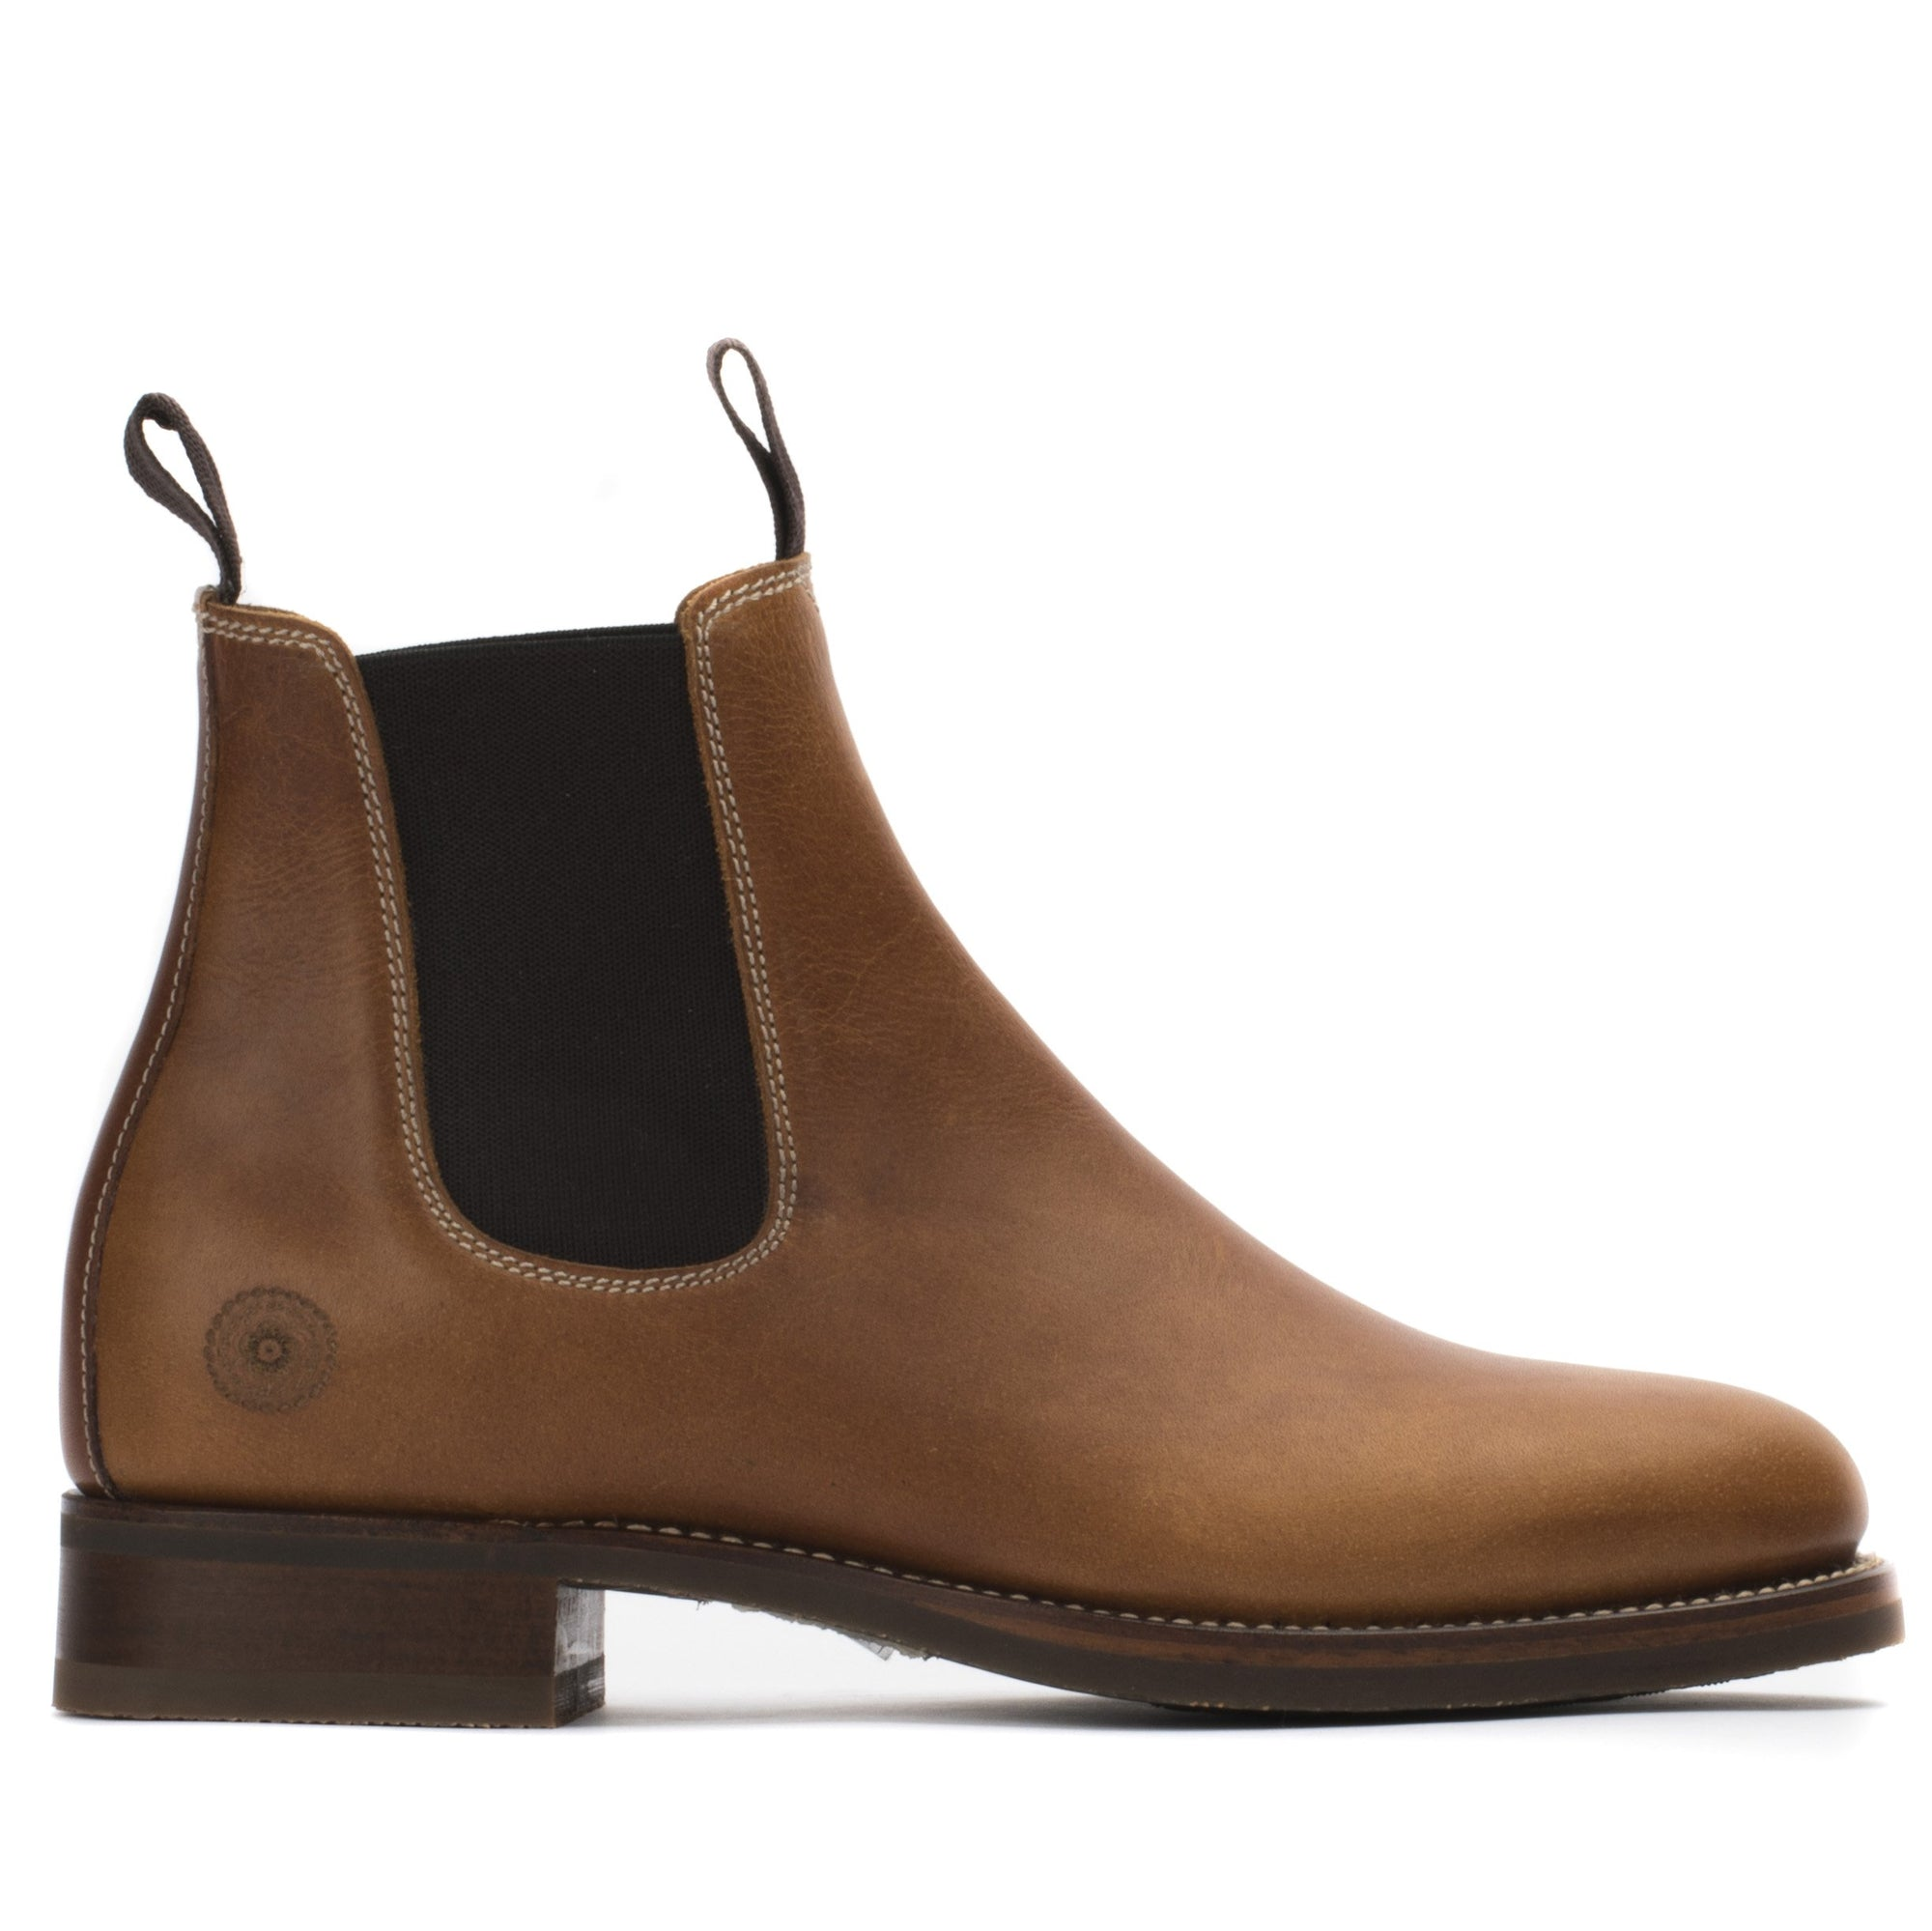 Boot - All Weather Chelsea Original